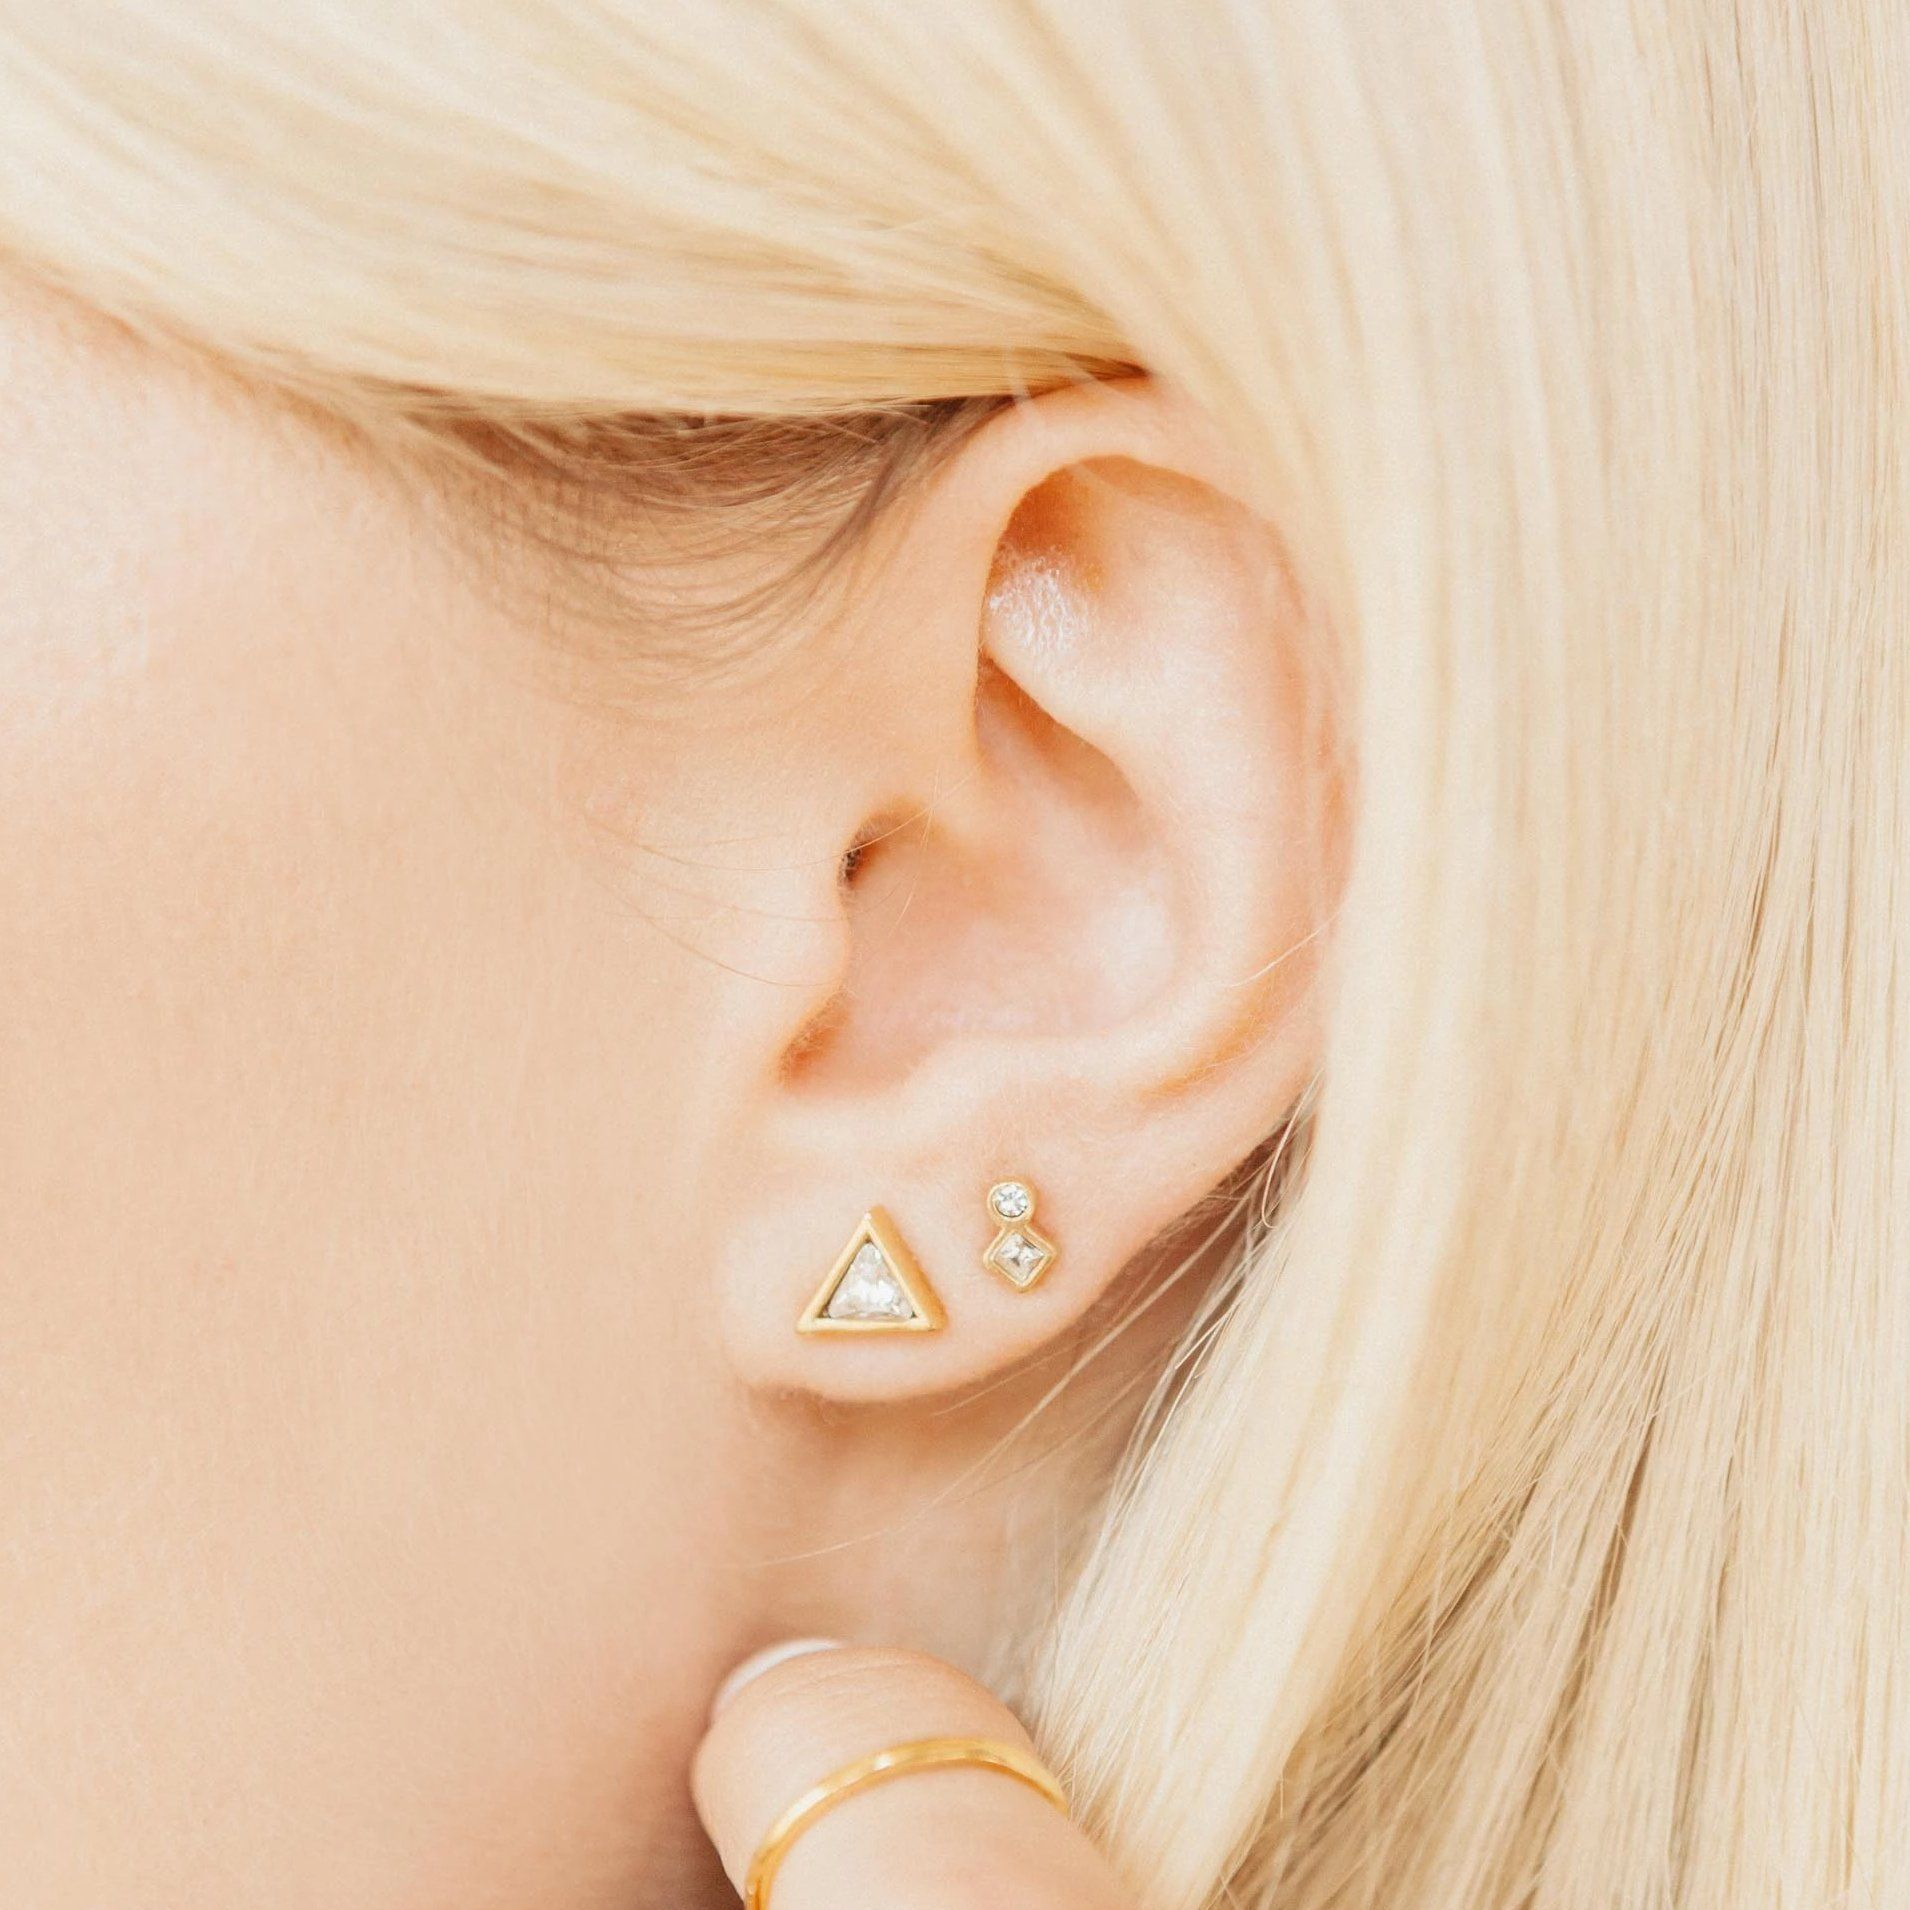 Geometric+studs+earrings+circle+square+gold